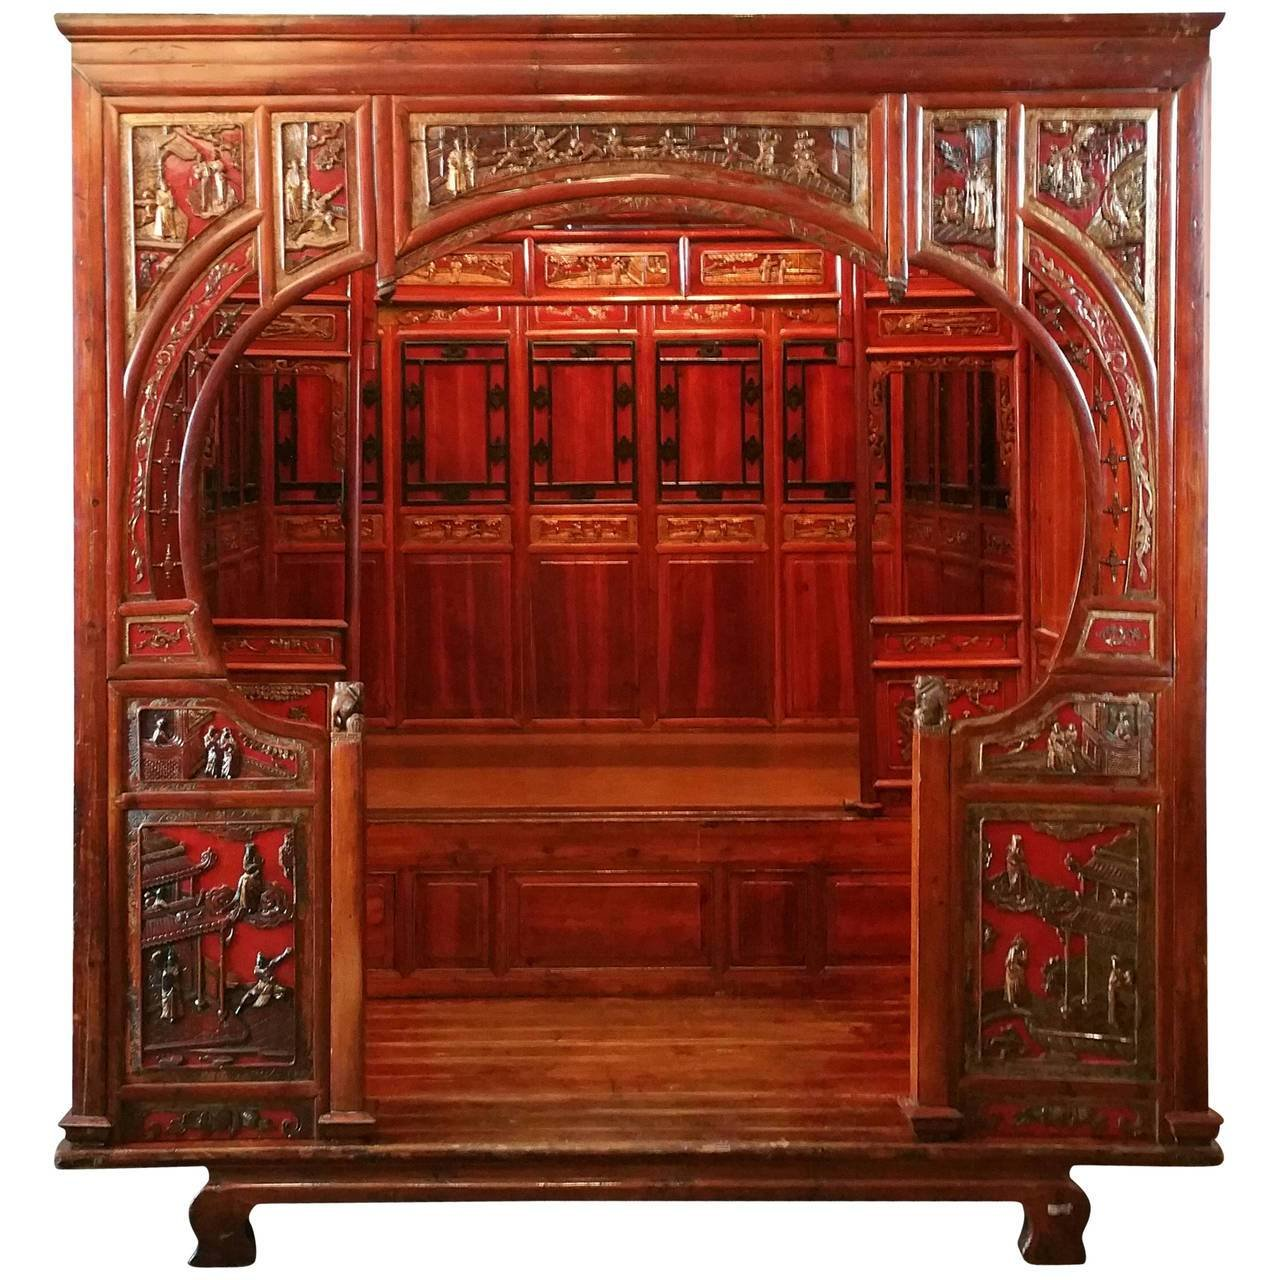 Best Antique Chinese Carved Canopy Bed With Alcove For Sale At With Pictures